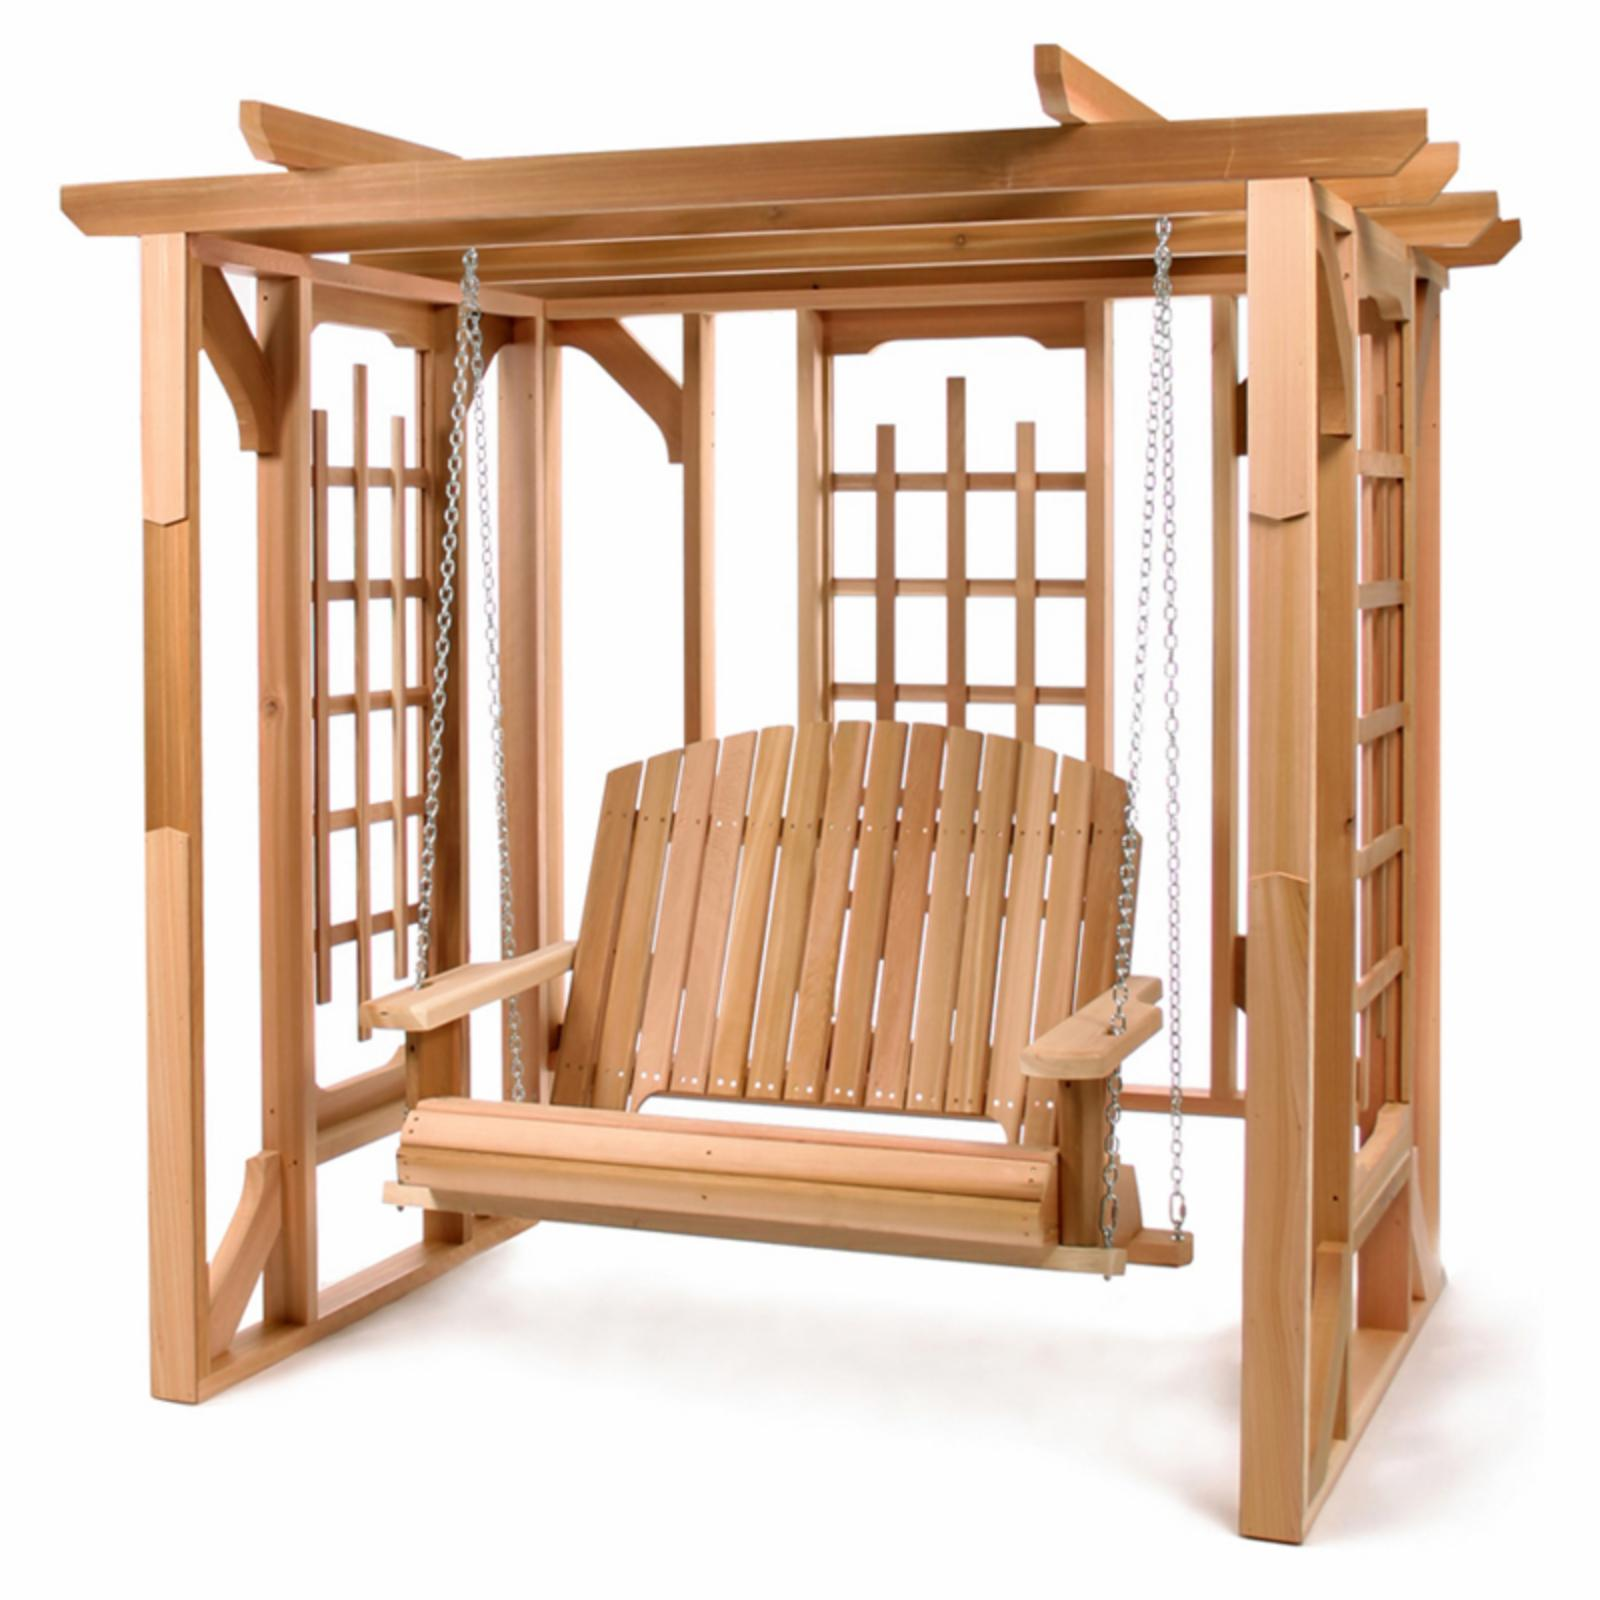 All Things Cedar Pergola with Swing - PO72-S